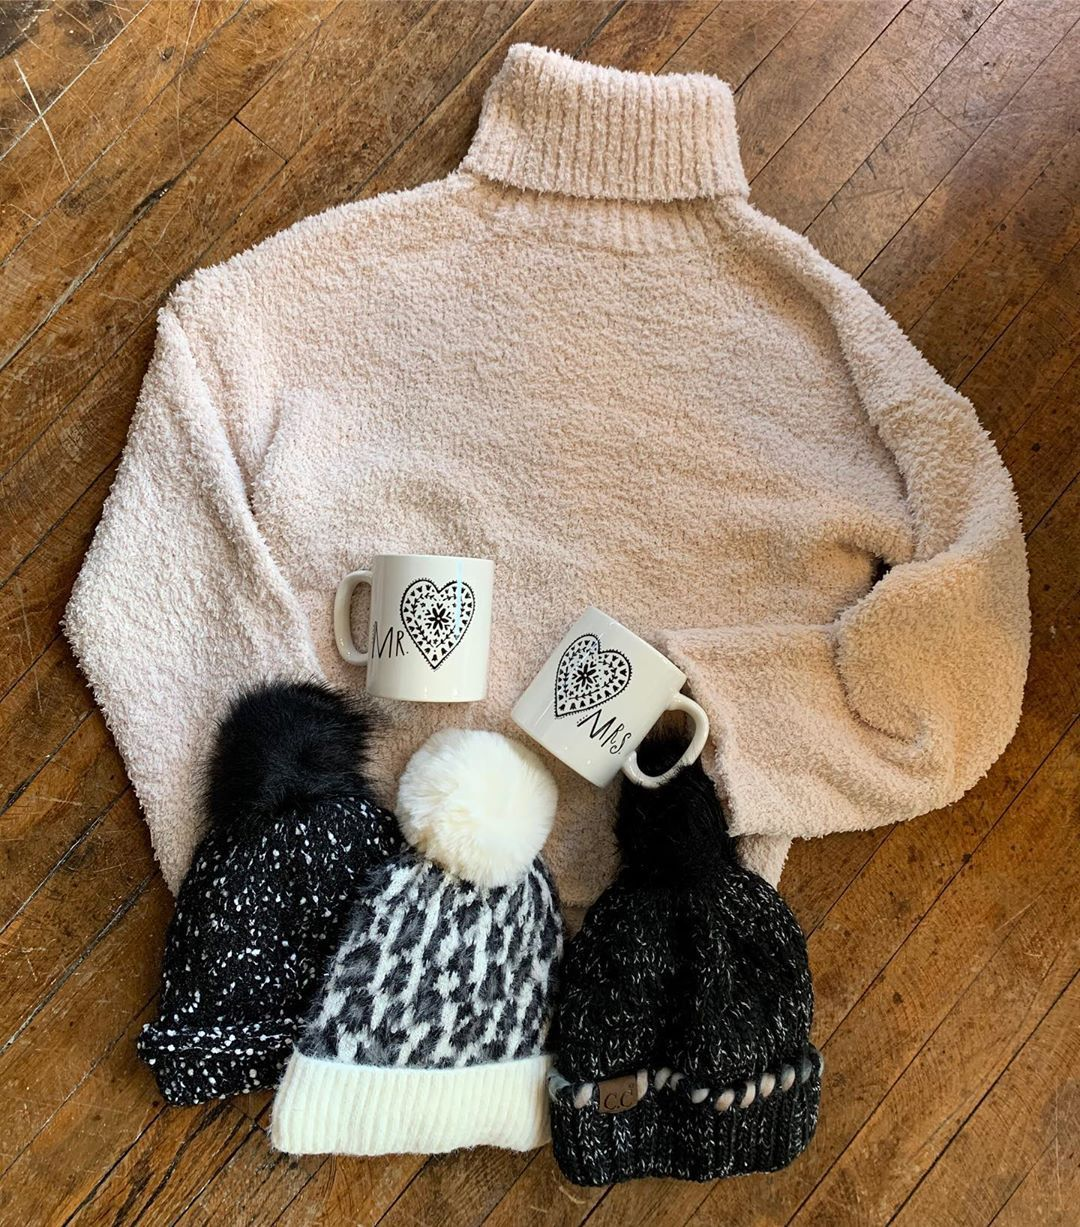 Baby its cold outside    Weve got all things cozy to stay warm inside with some hot cocoa   Come and see us until 6 or we ship for free